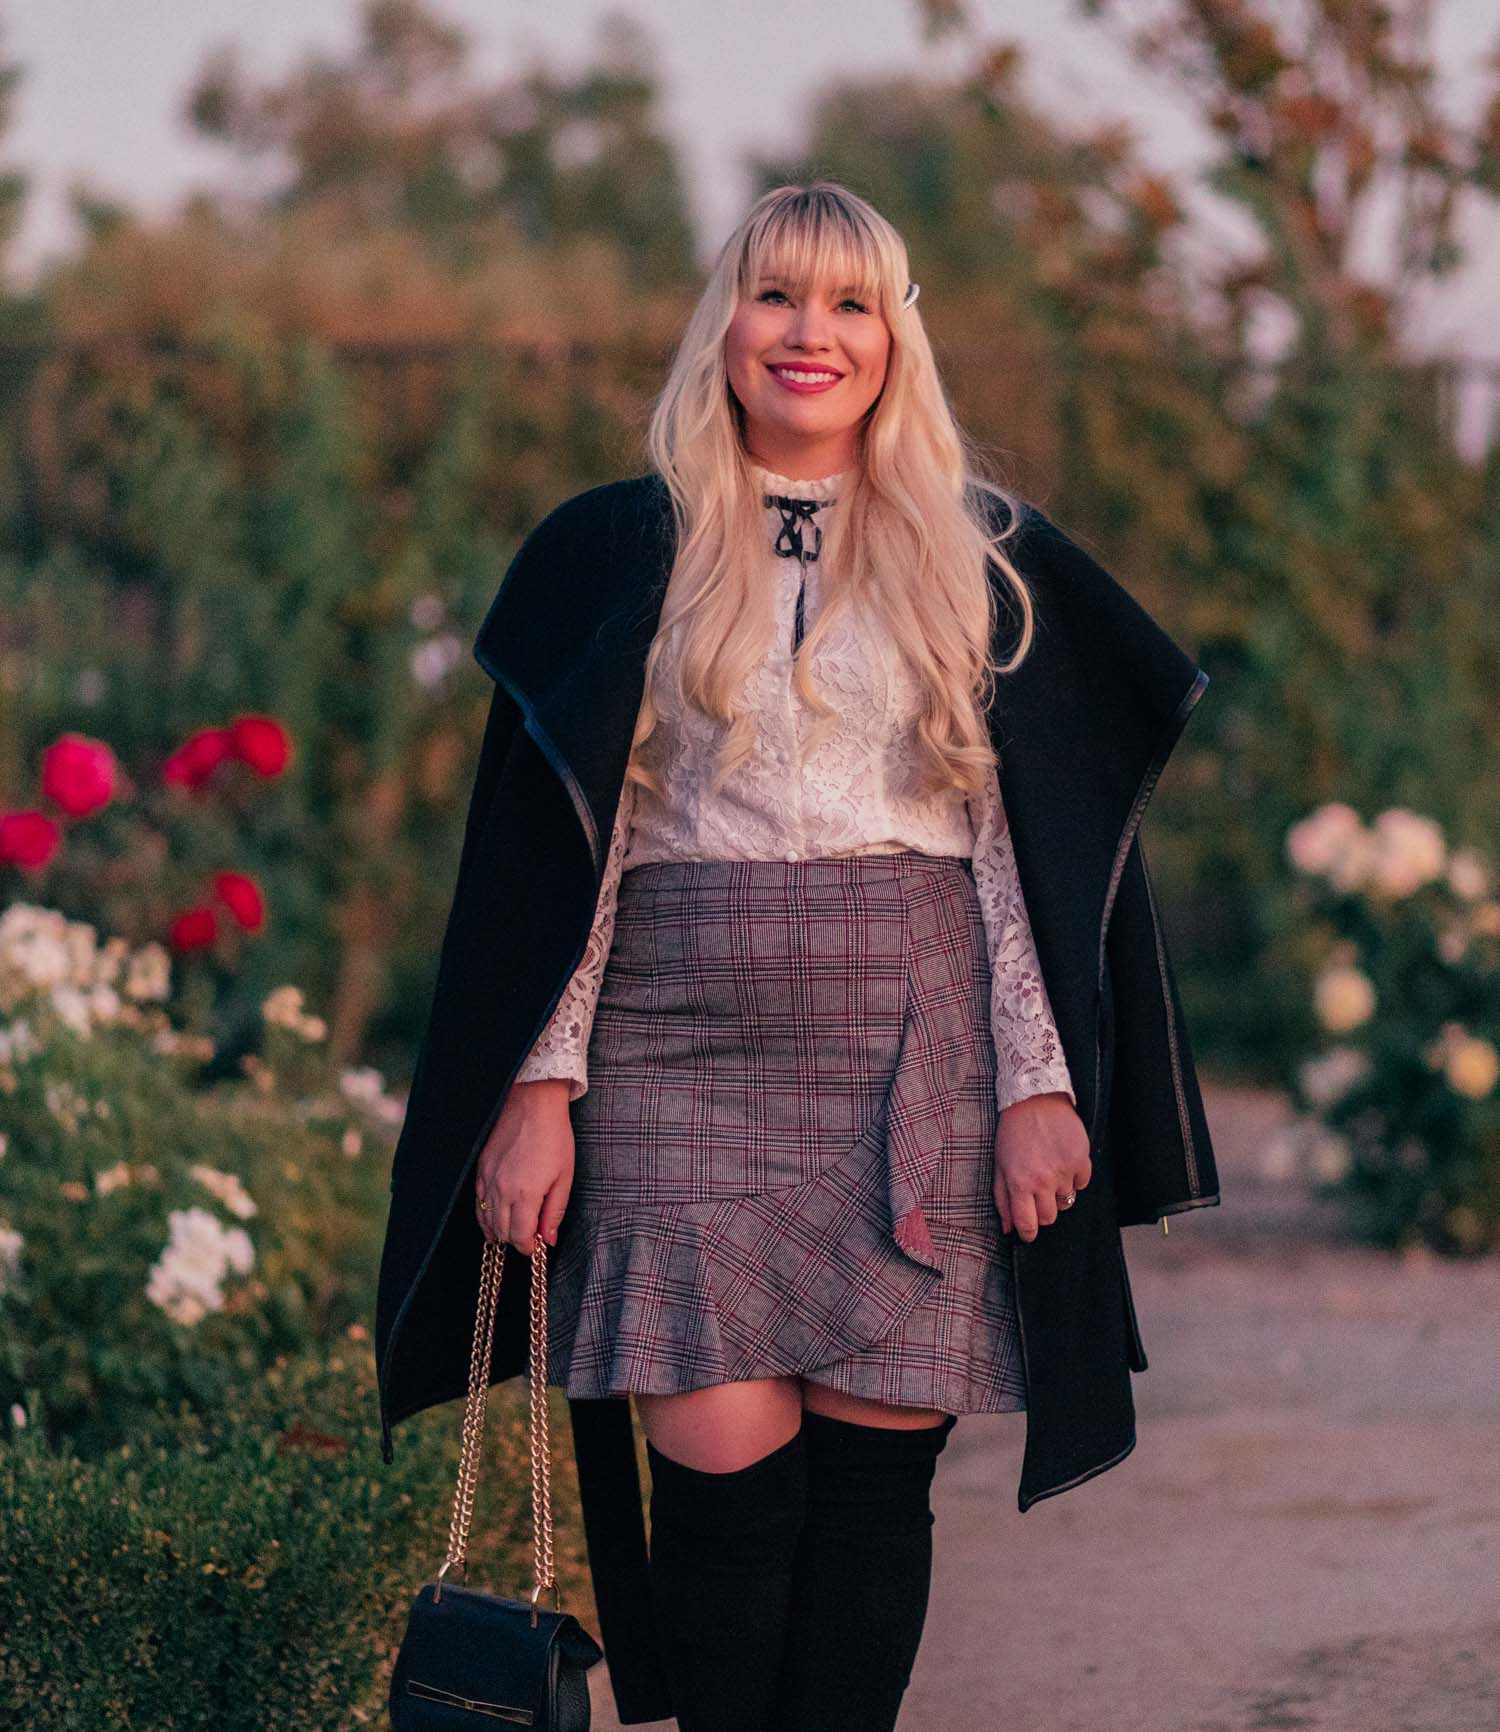 Elizabeth Hugen of Lizzie in Lace styles a Feminine Menswear Inspired Outfit for fall!